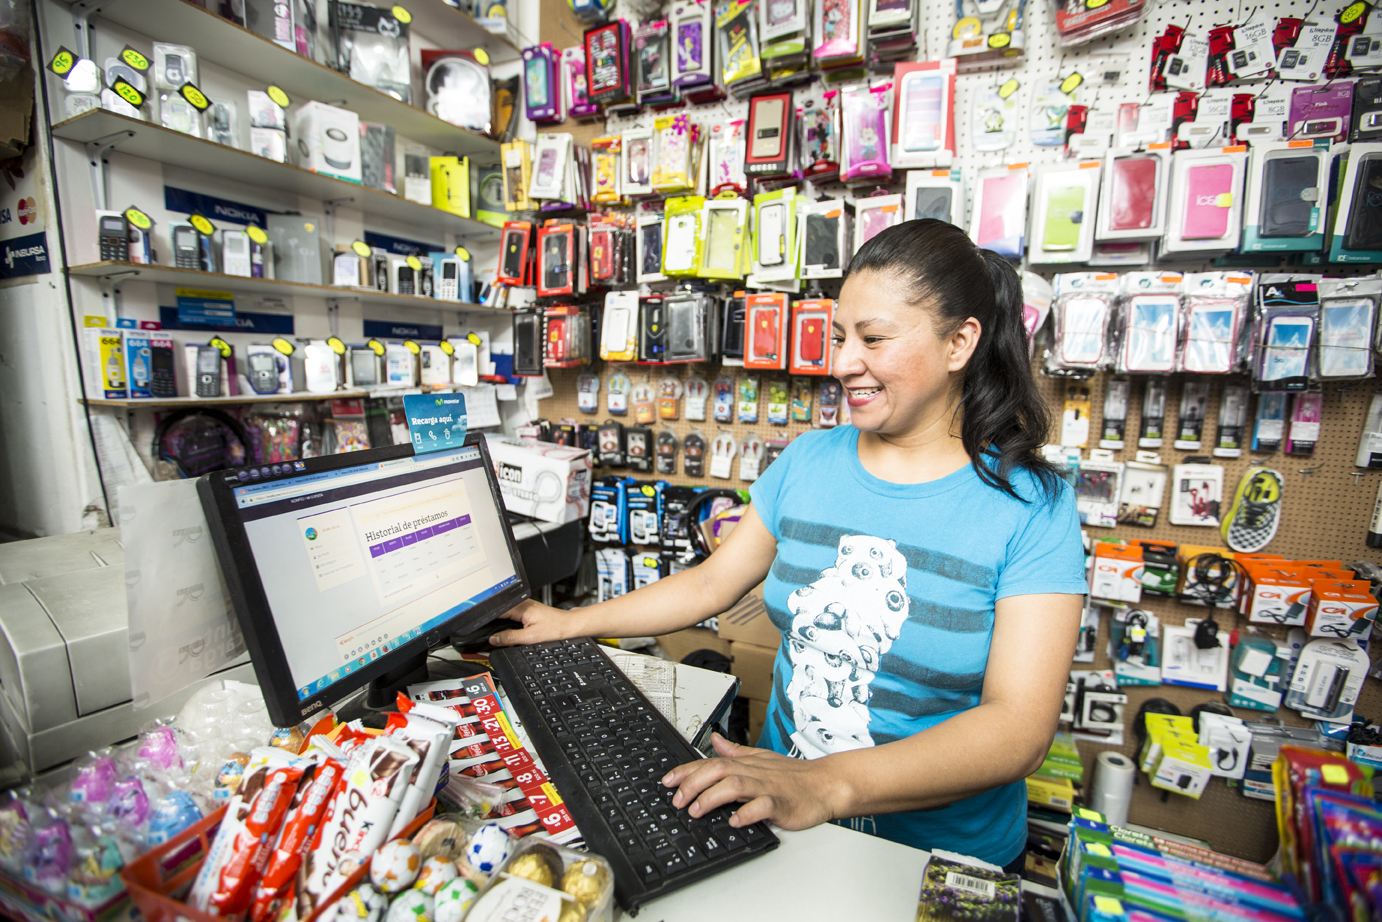 Alma Delía Centeno Romualdo, a Konfio client, runs her internet cafe in Mexico City.